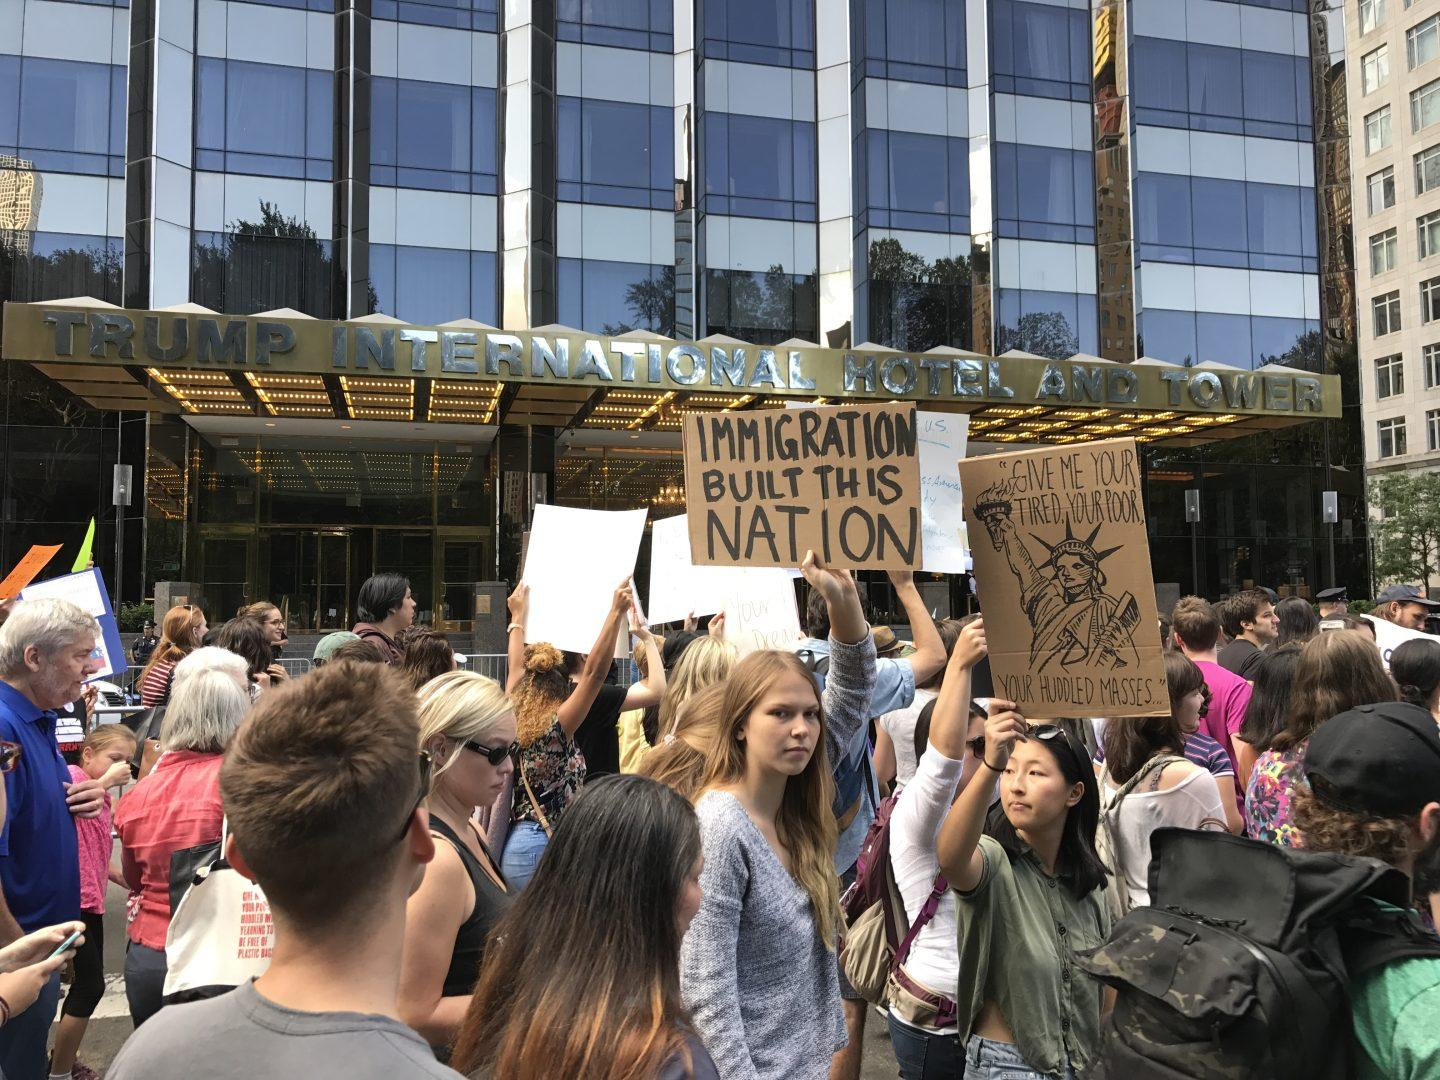 PHOTO ESSAY: DACA Protest in Columbus Circle